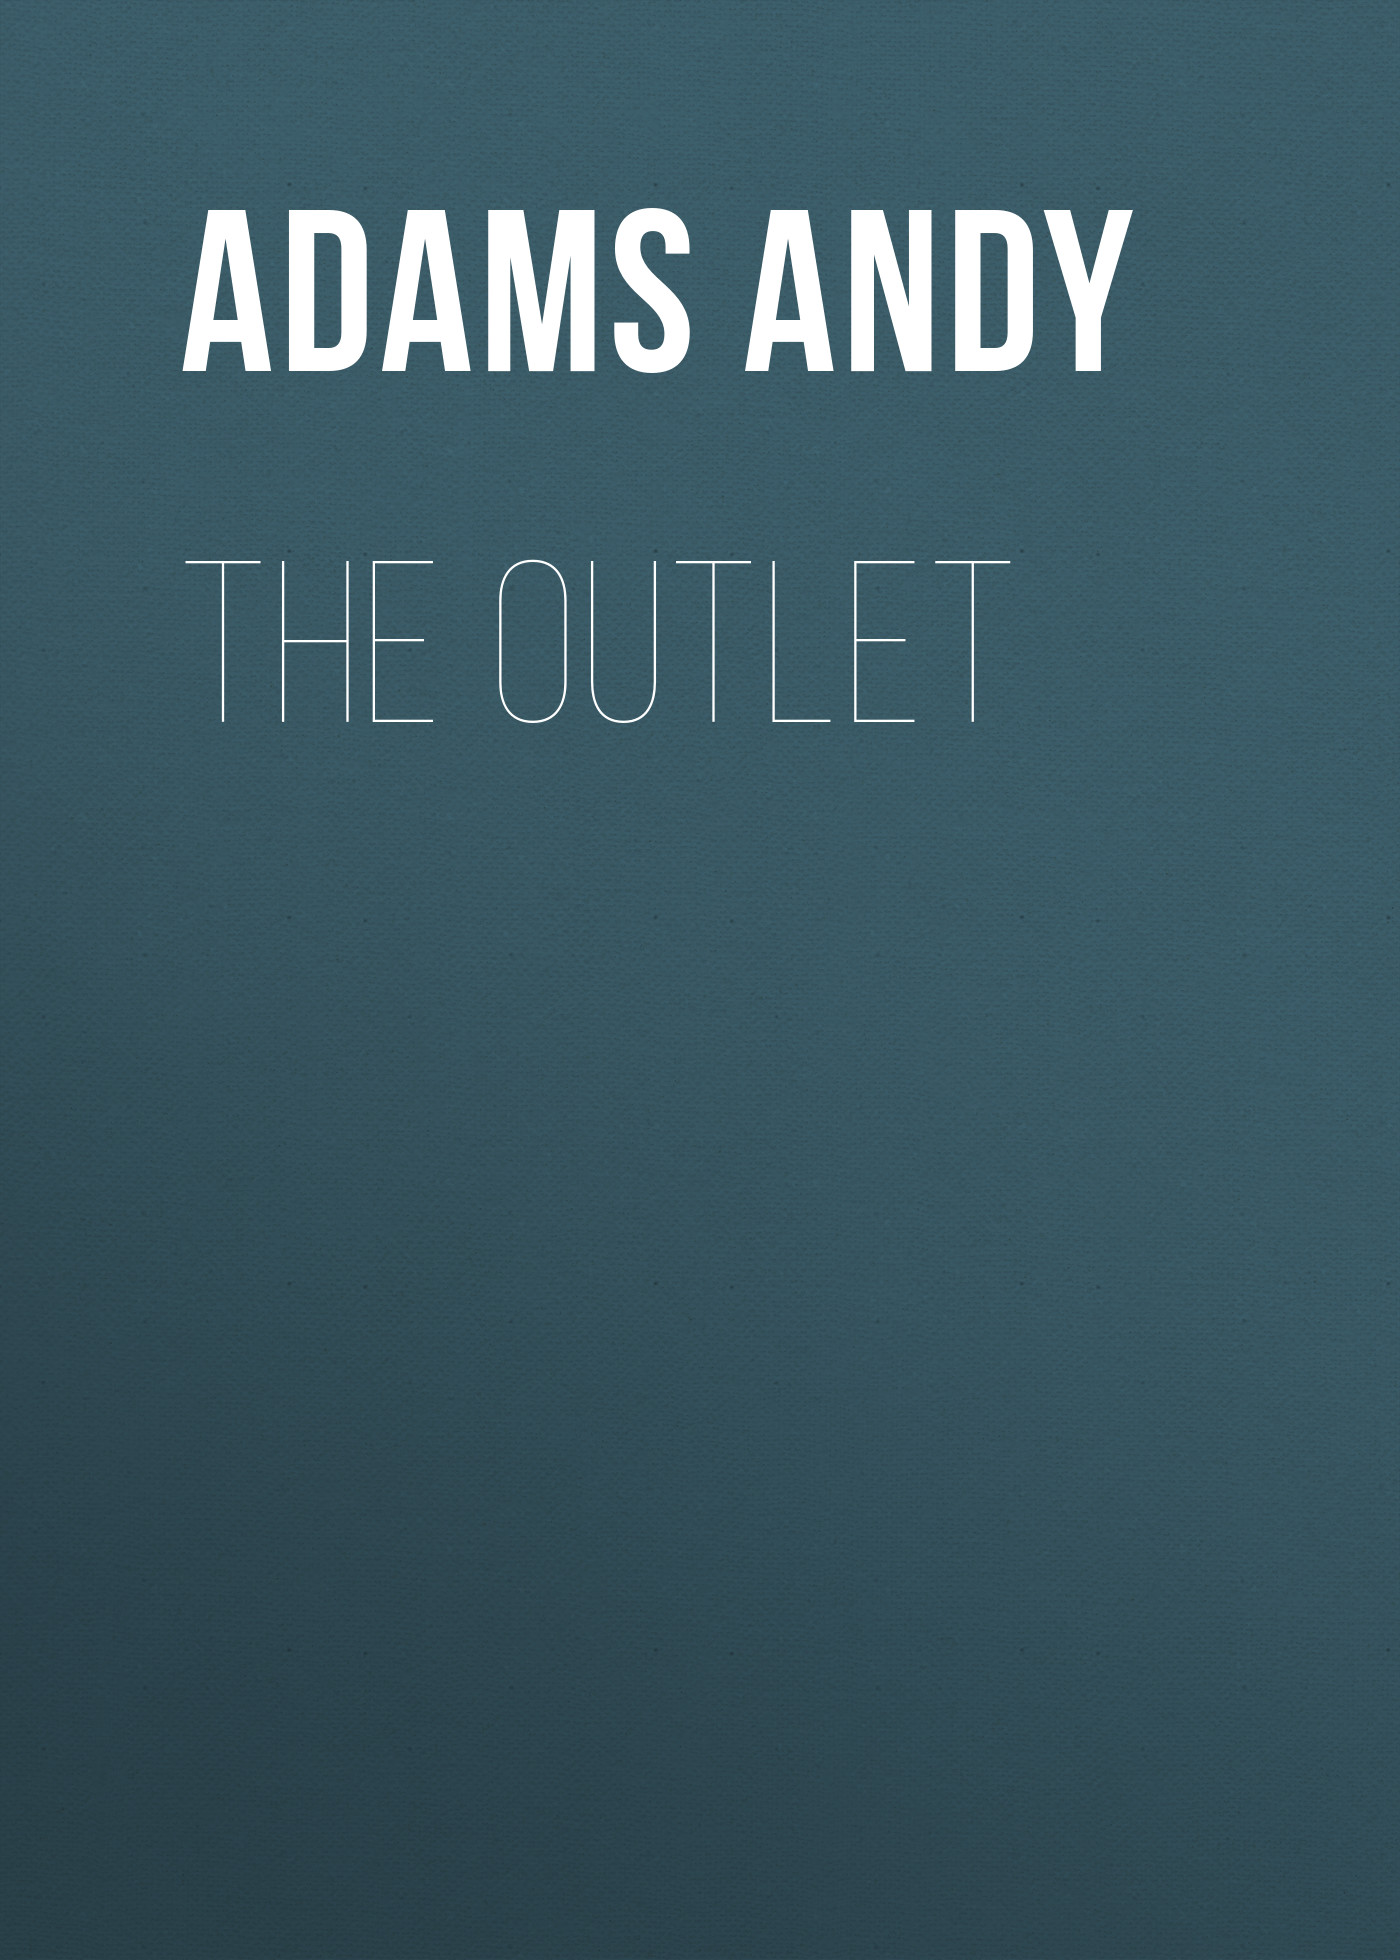 Adams Andy The Outlet цена и фото